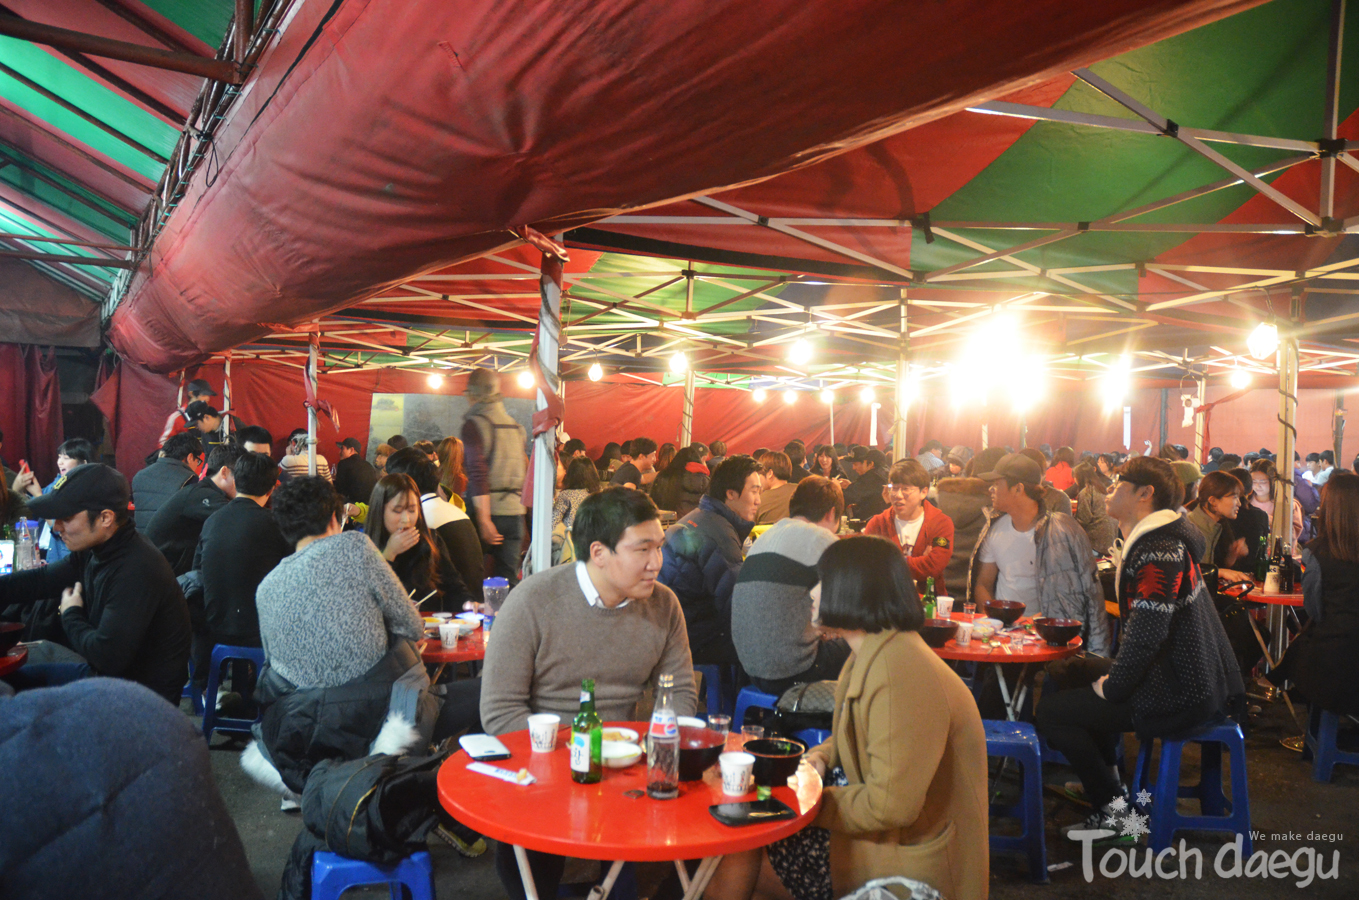 The tent is filled with people who have Bulgogi & Udon